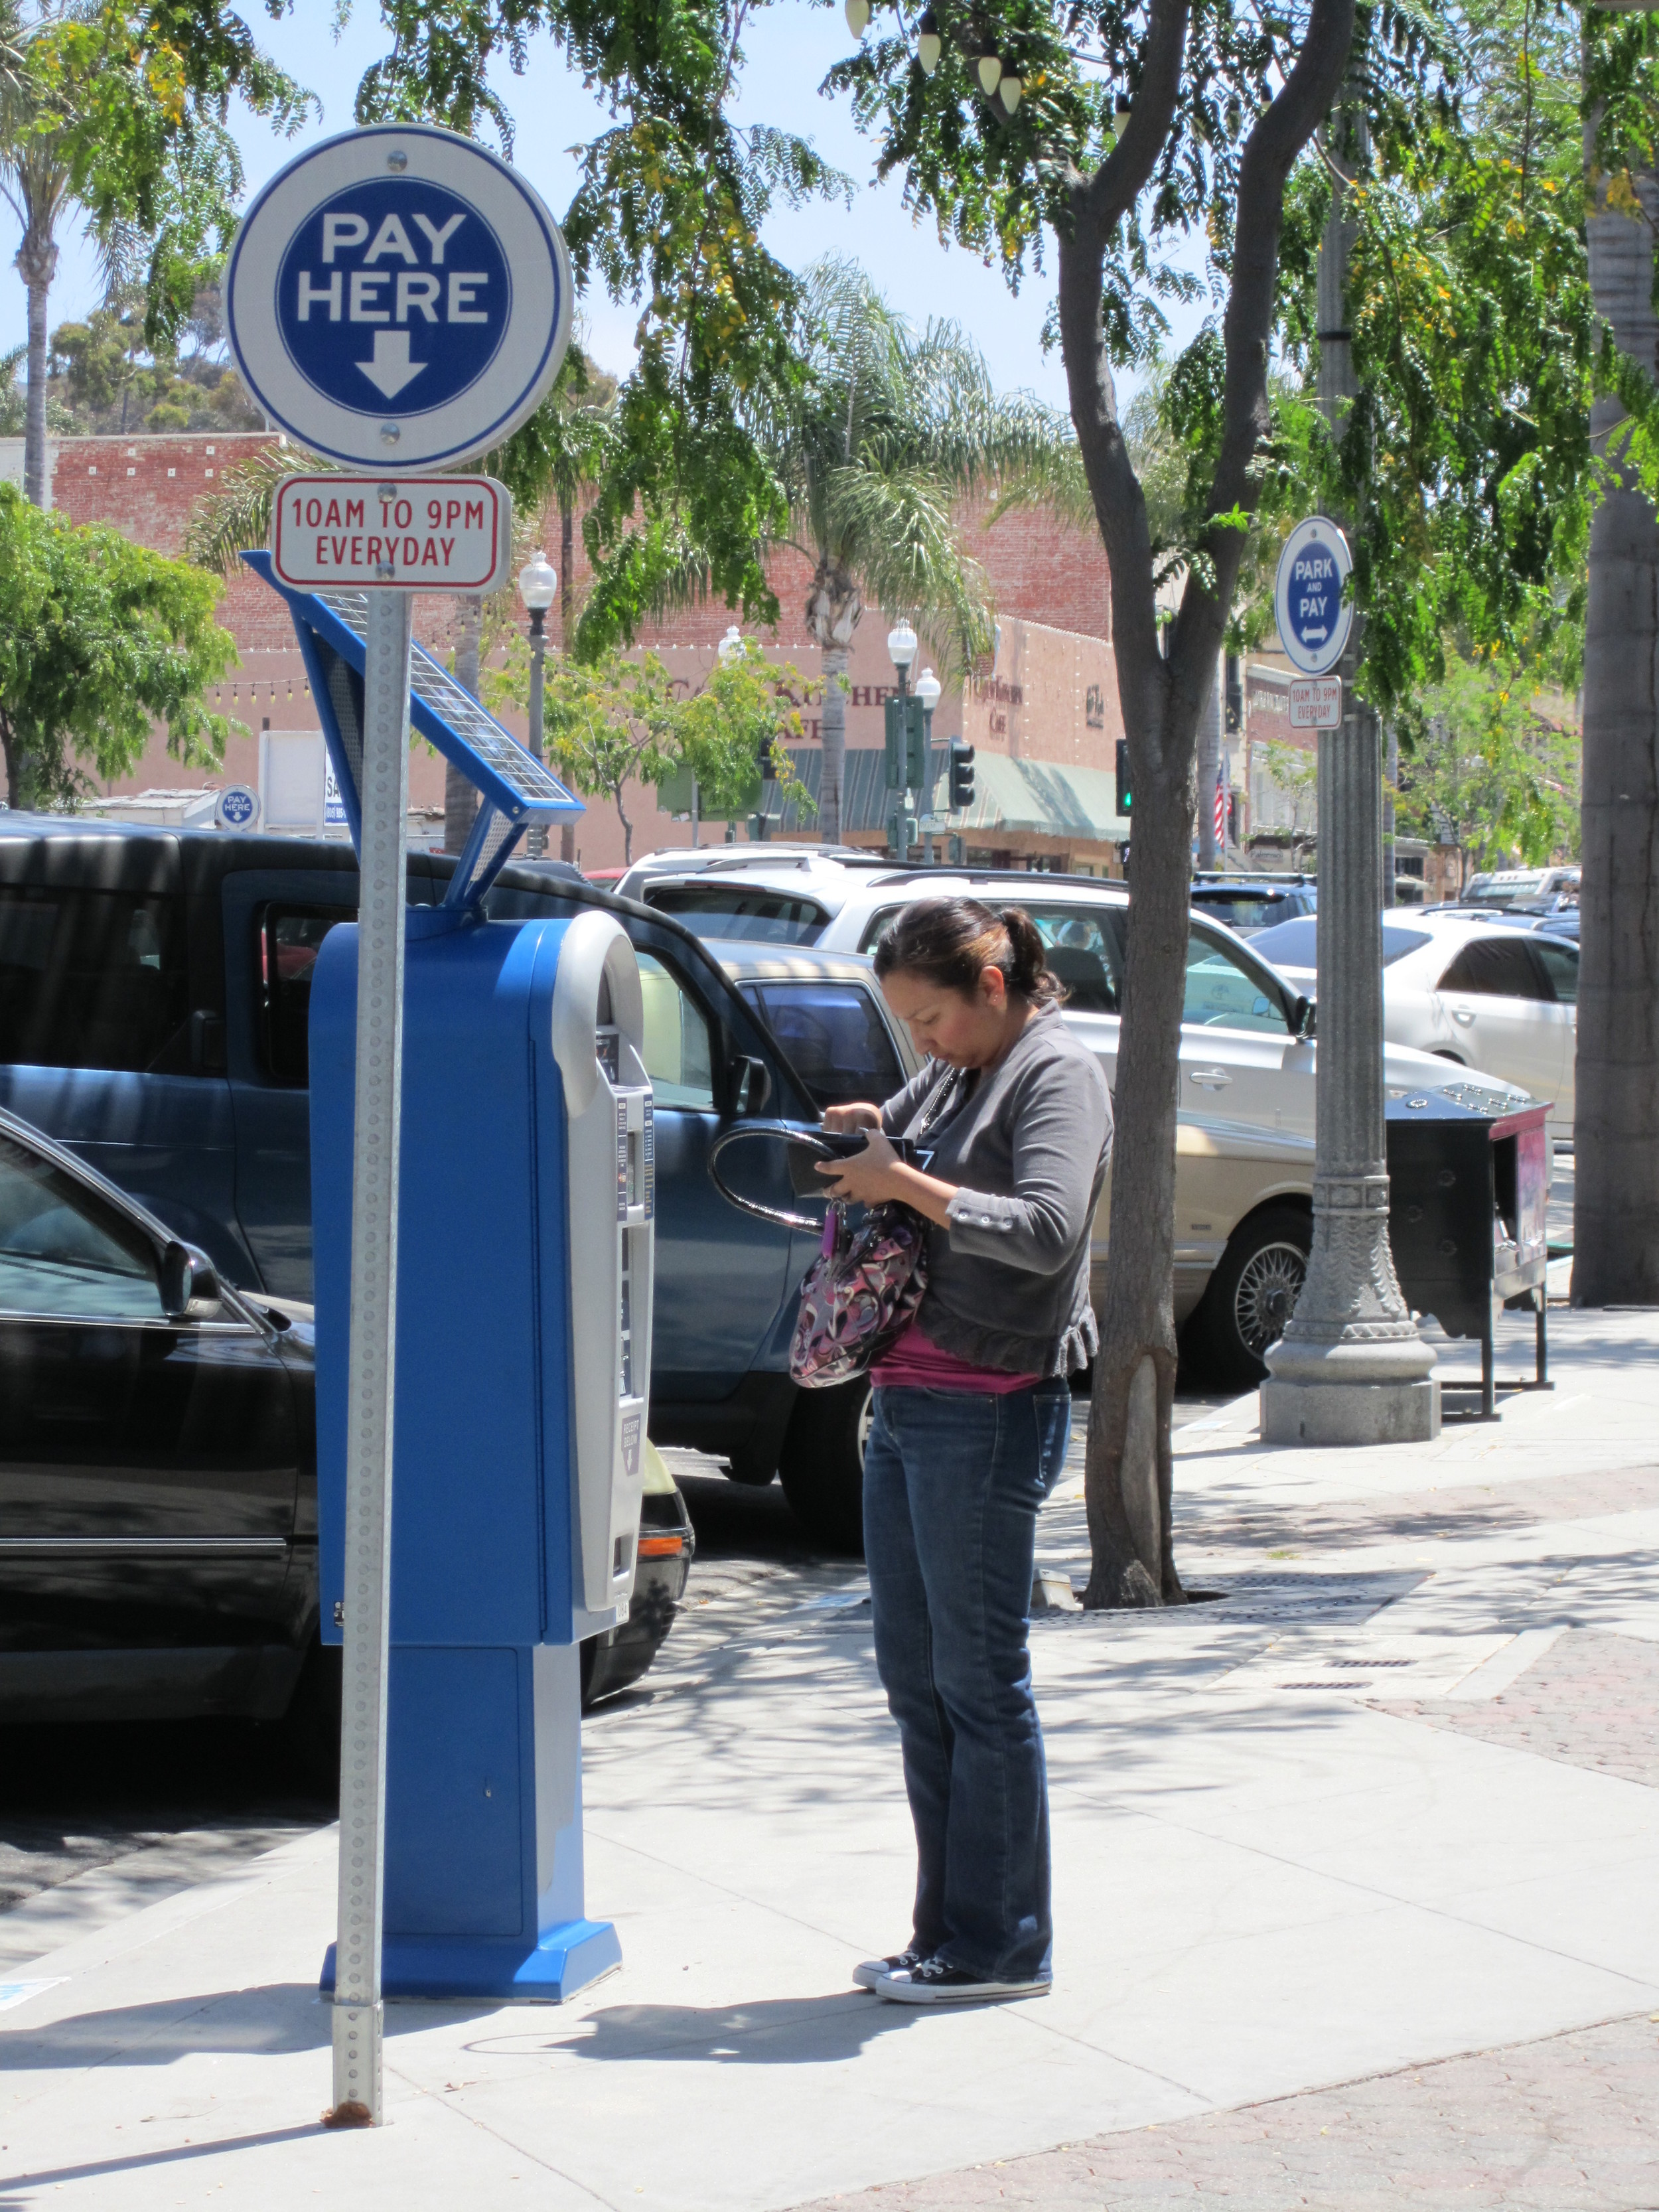 Parking technologies can be as simple as a sign or complex as real-time parking information and pay-by-cell metering. There is a wide range of choices, each with different strengths and weaknesses depending on the context used. RWC has the expertise to help you sort through all them and choose the system that makes the most sense from a both a user and management perspective.